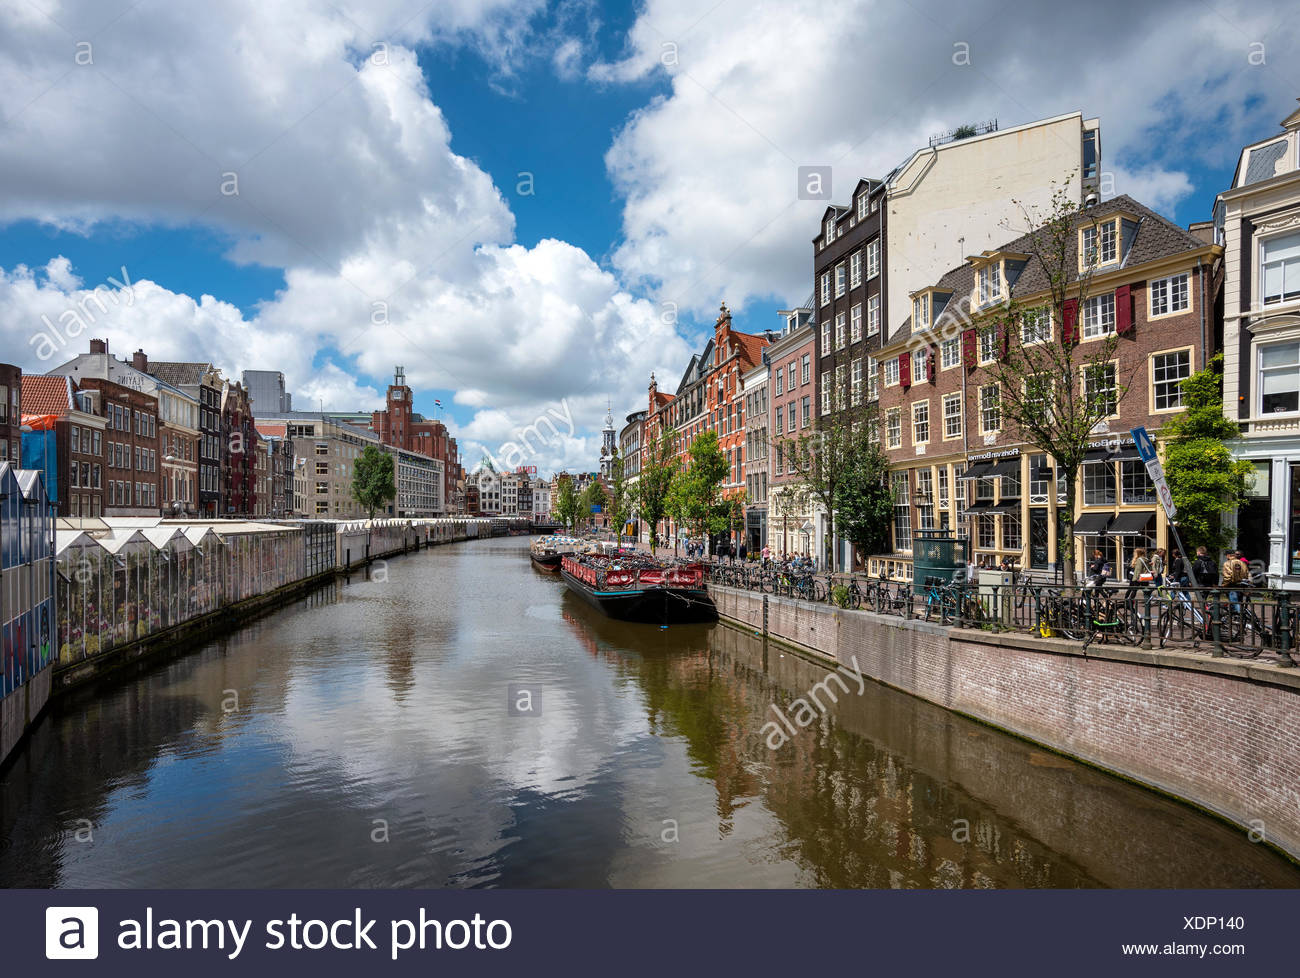 Le Singelgracht à Bloomenmarkt, Amsterdam, Hollande du Nord, Pays-Bas Photo Stock